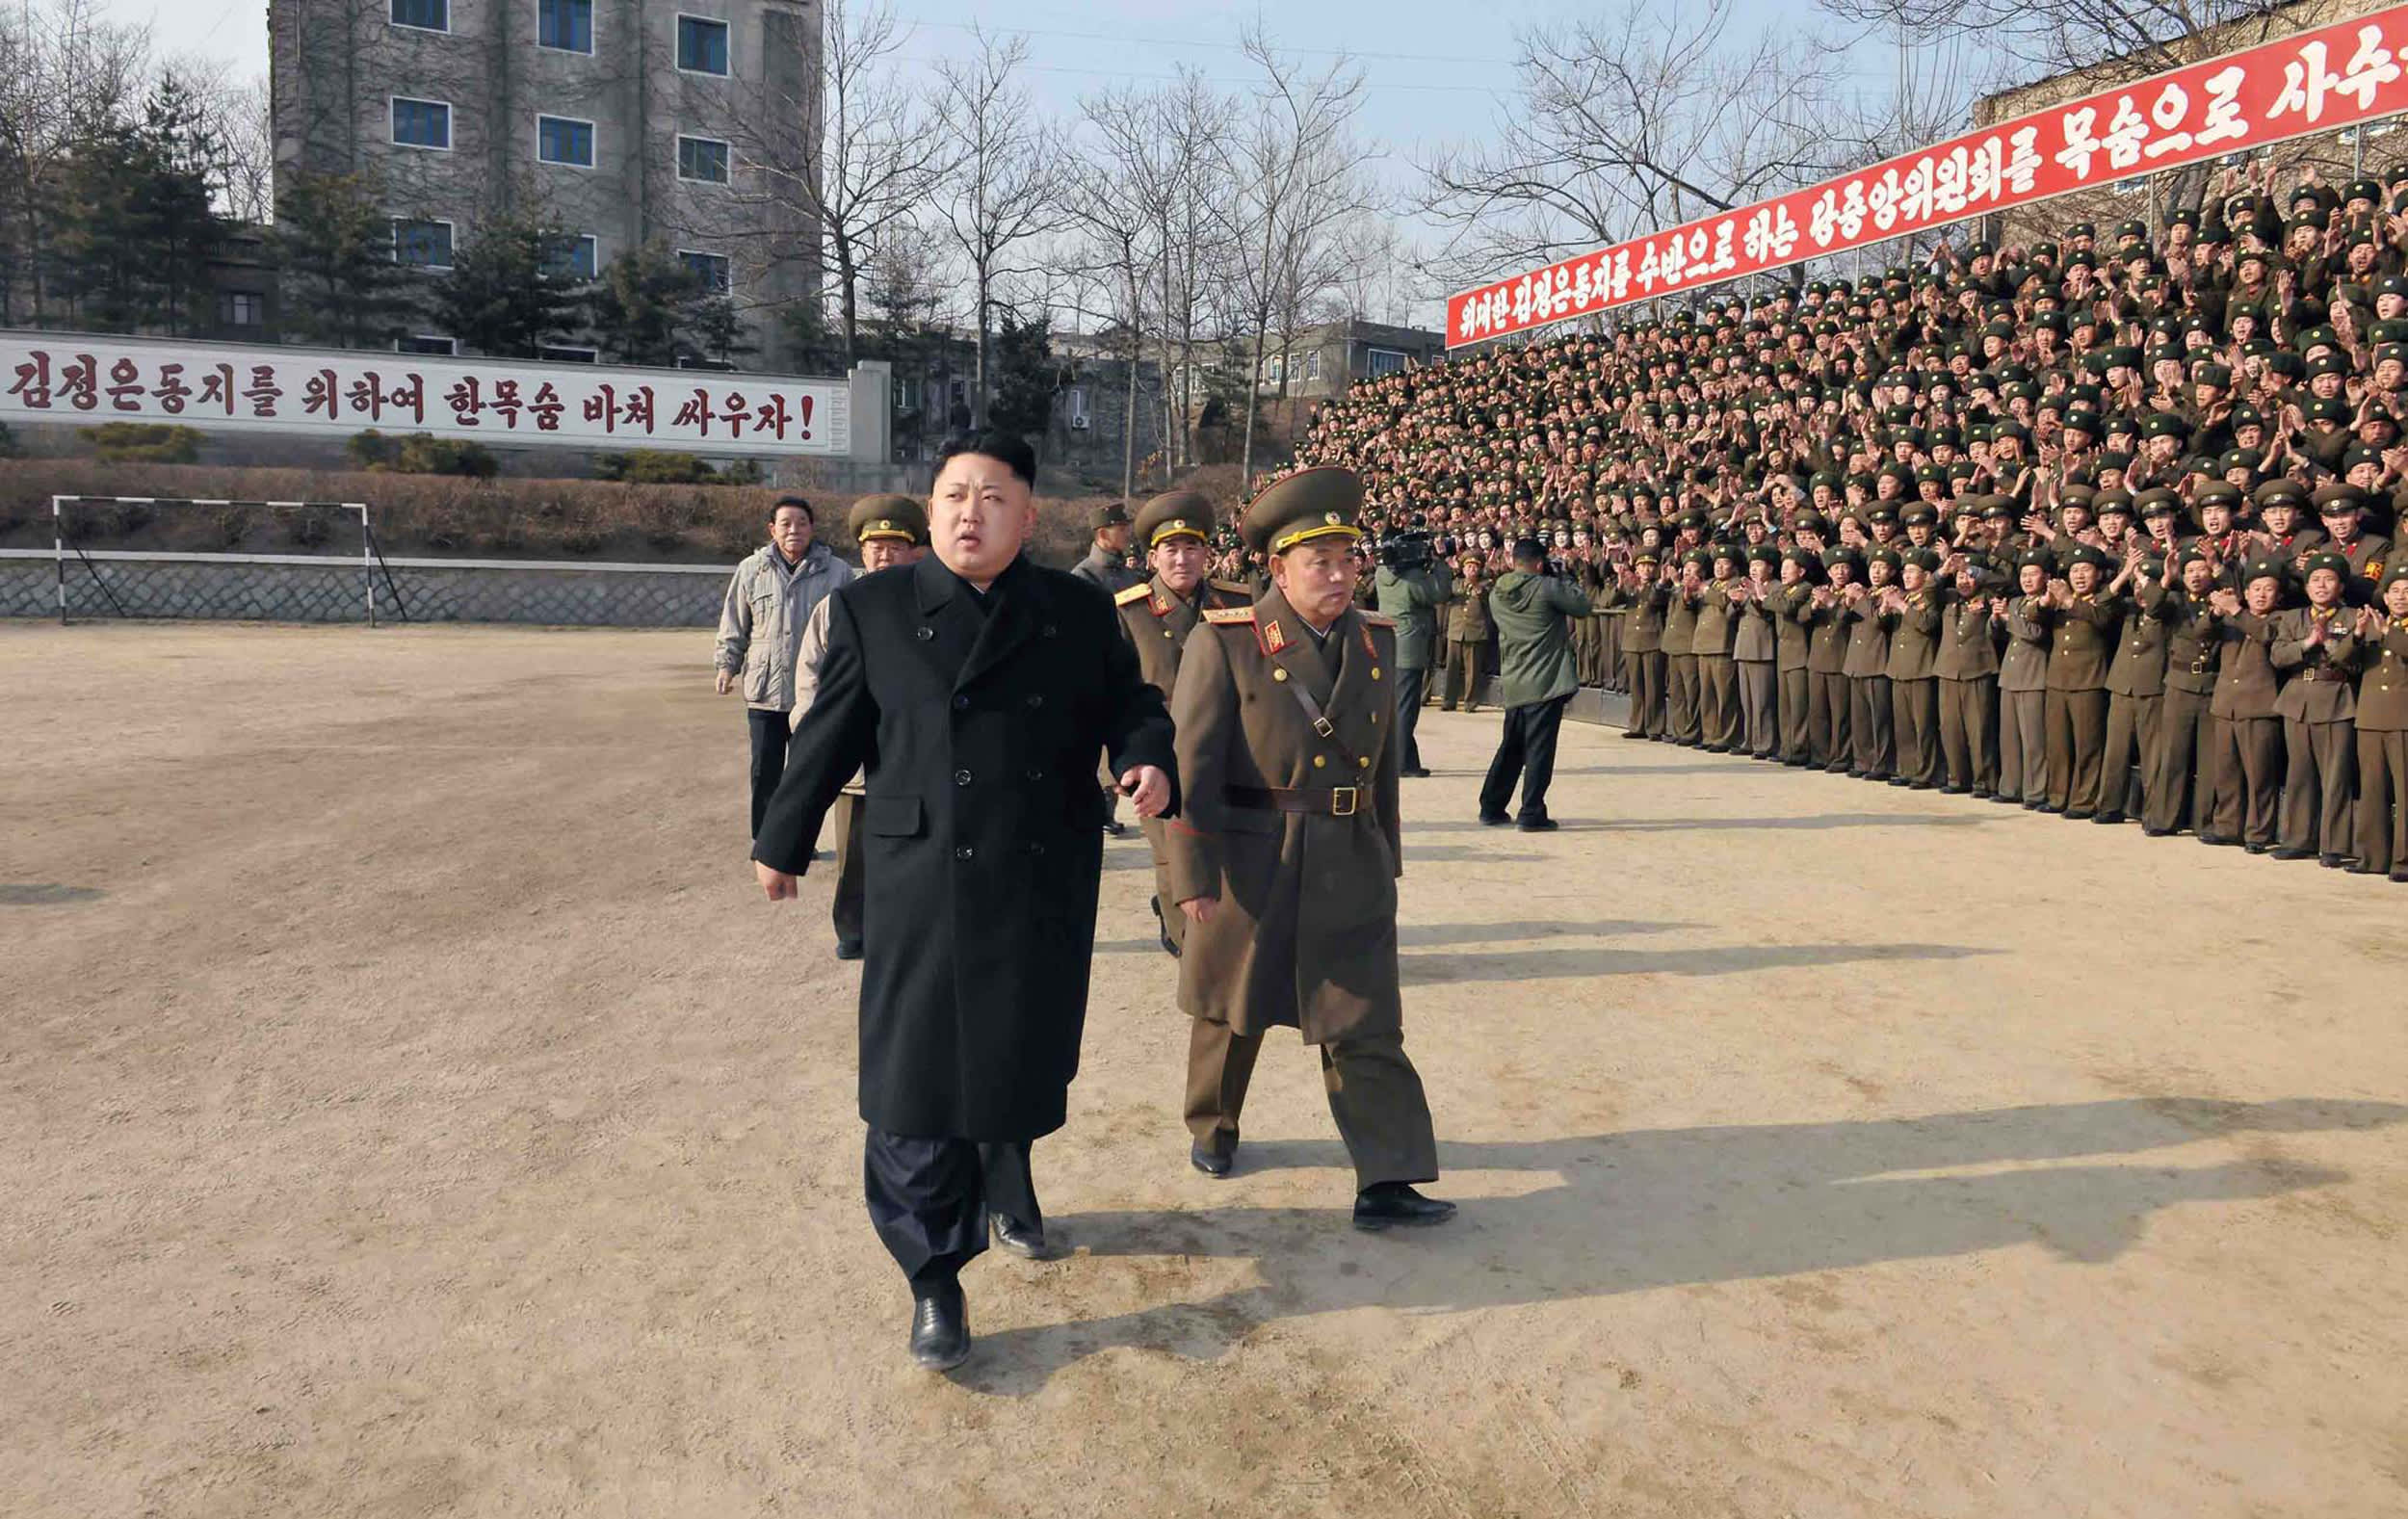 north korea markets and military rule